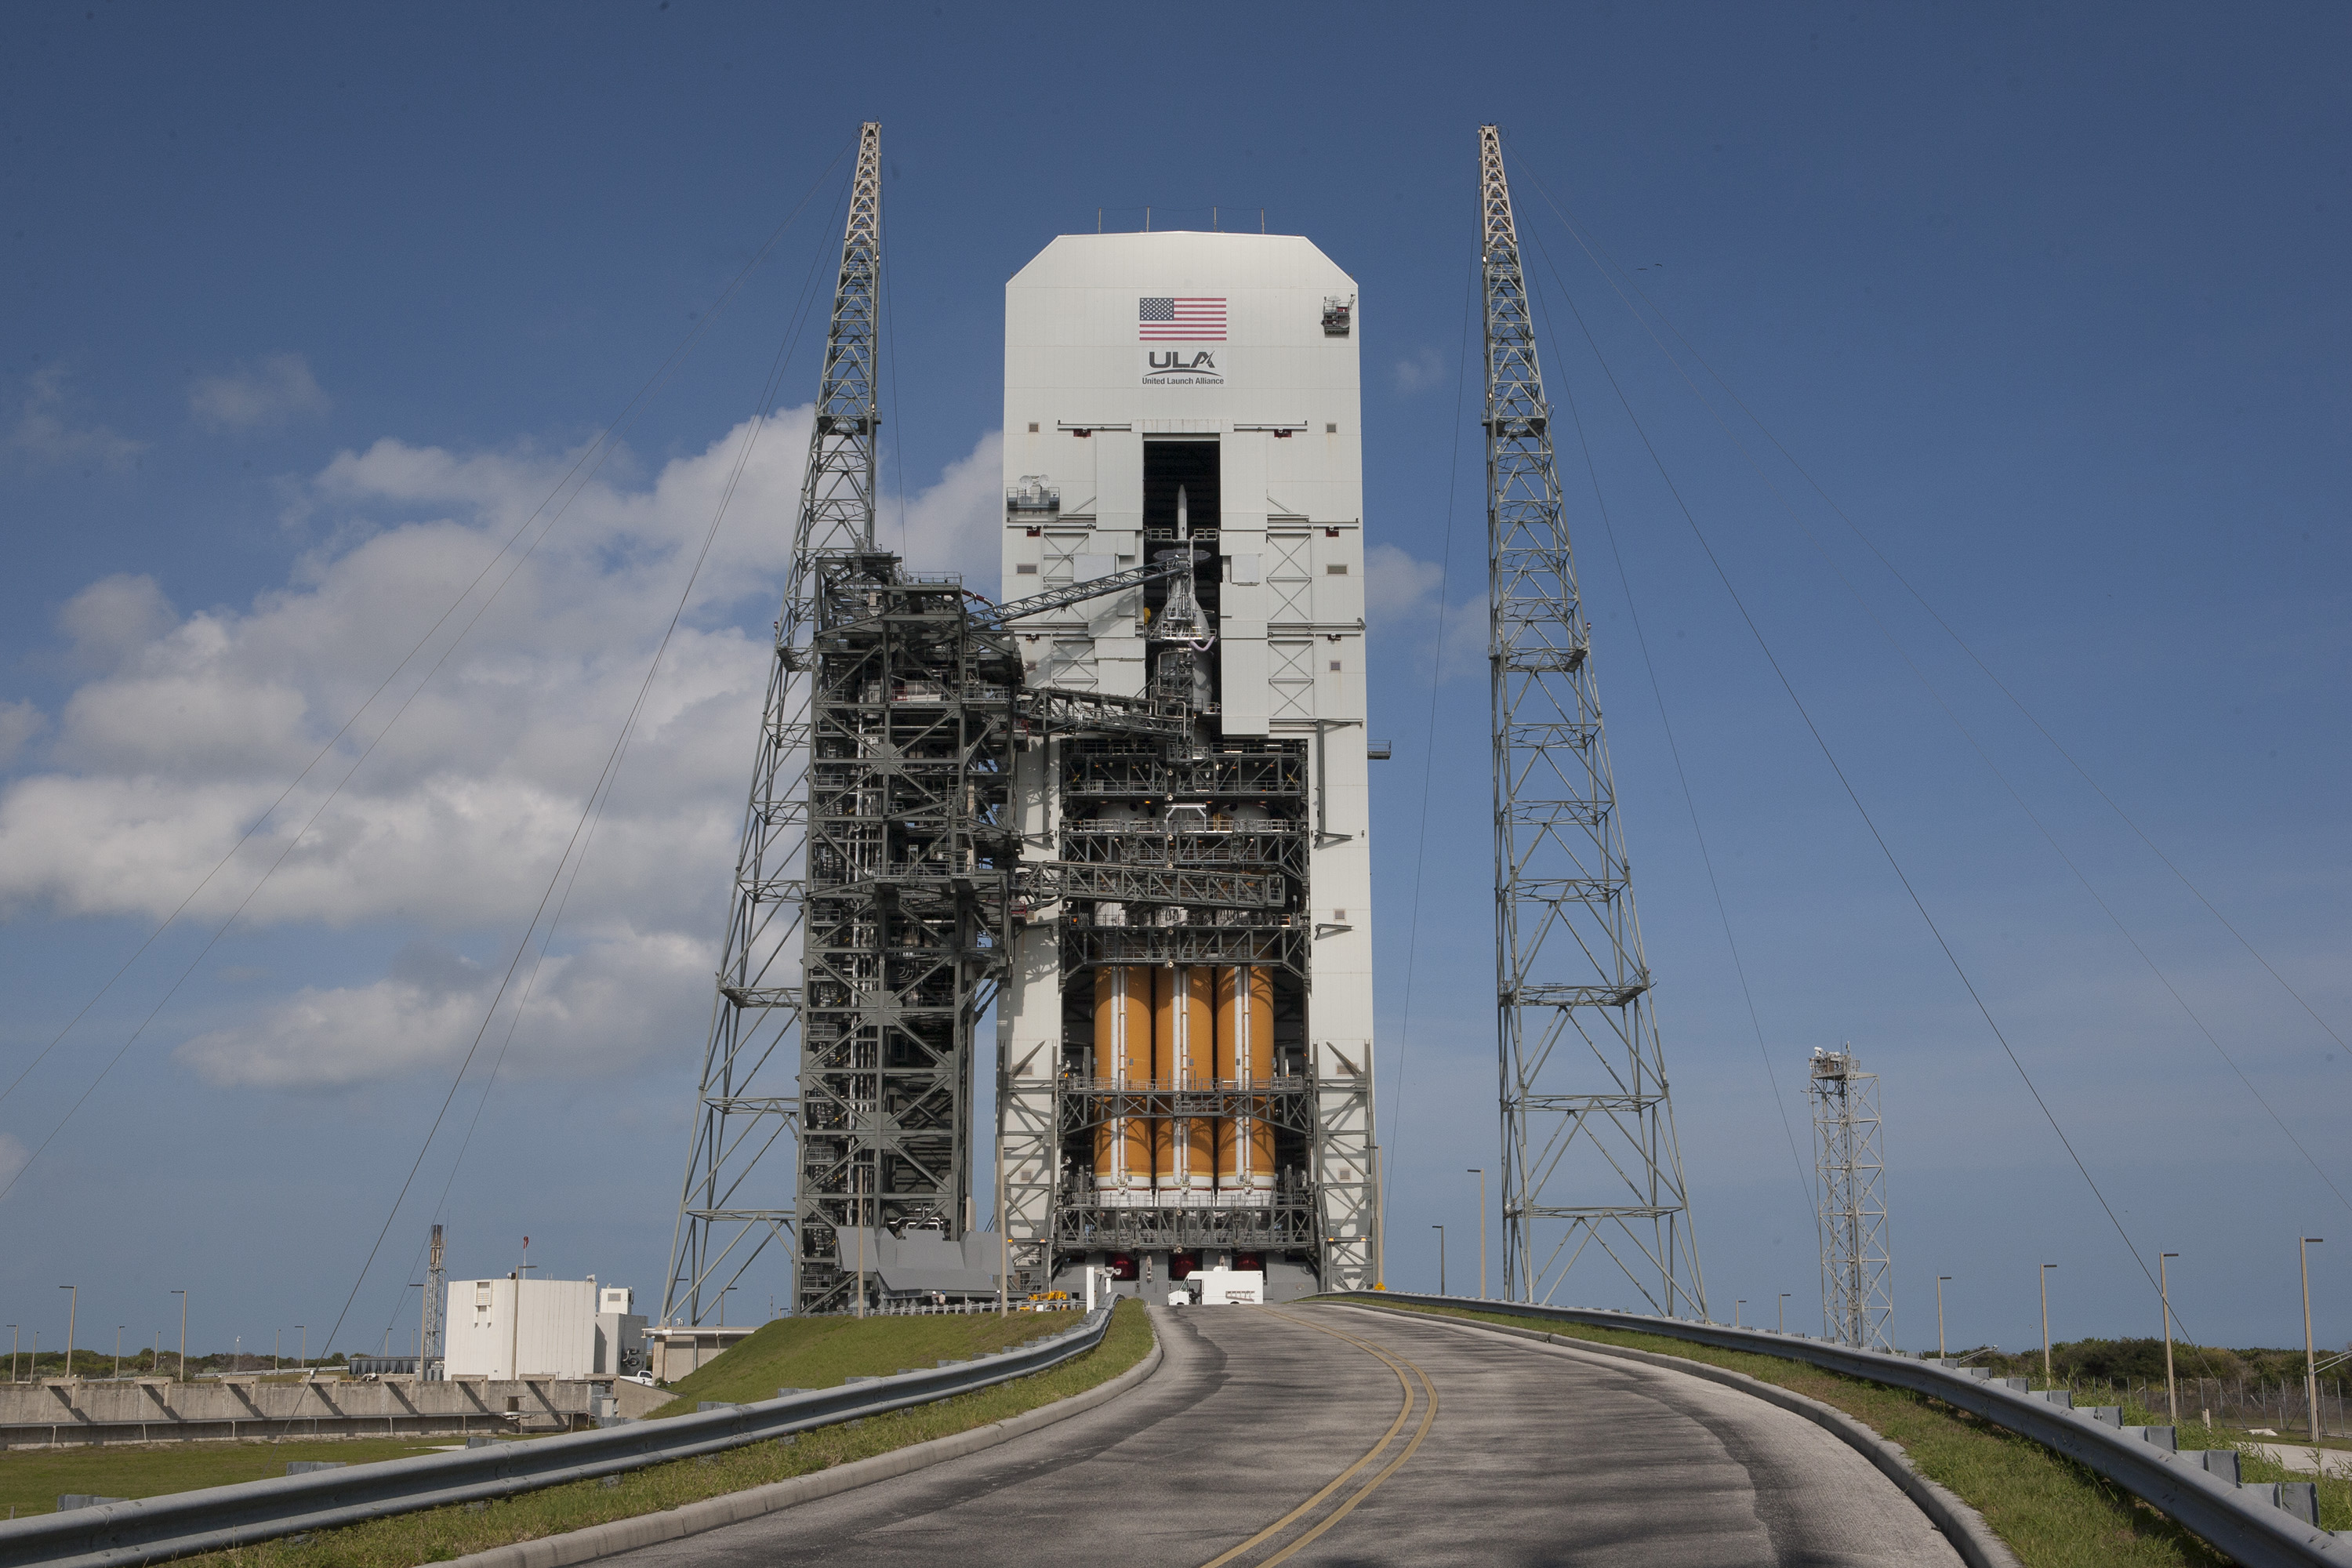 Orion Teams on Track Heading into Holiday | Orion